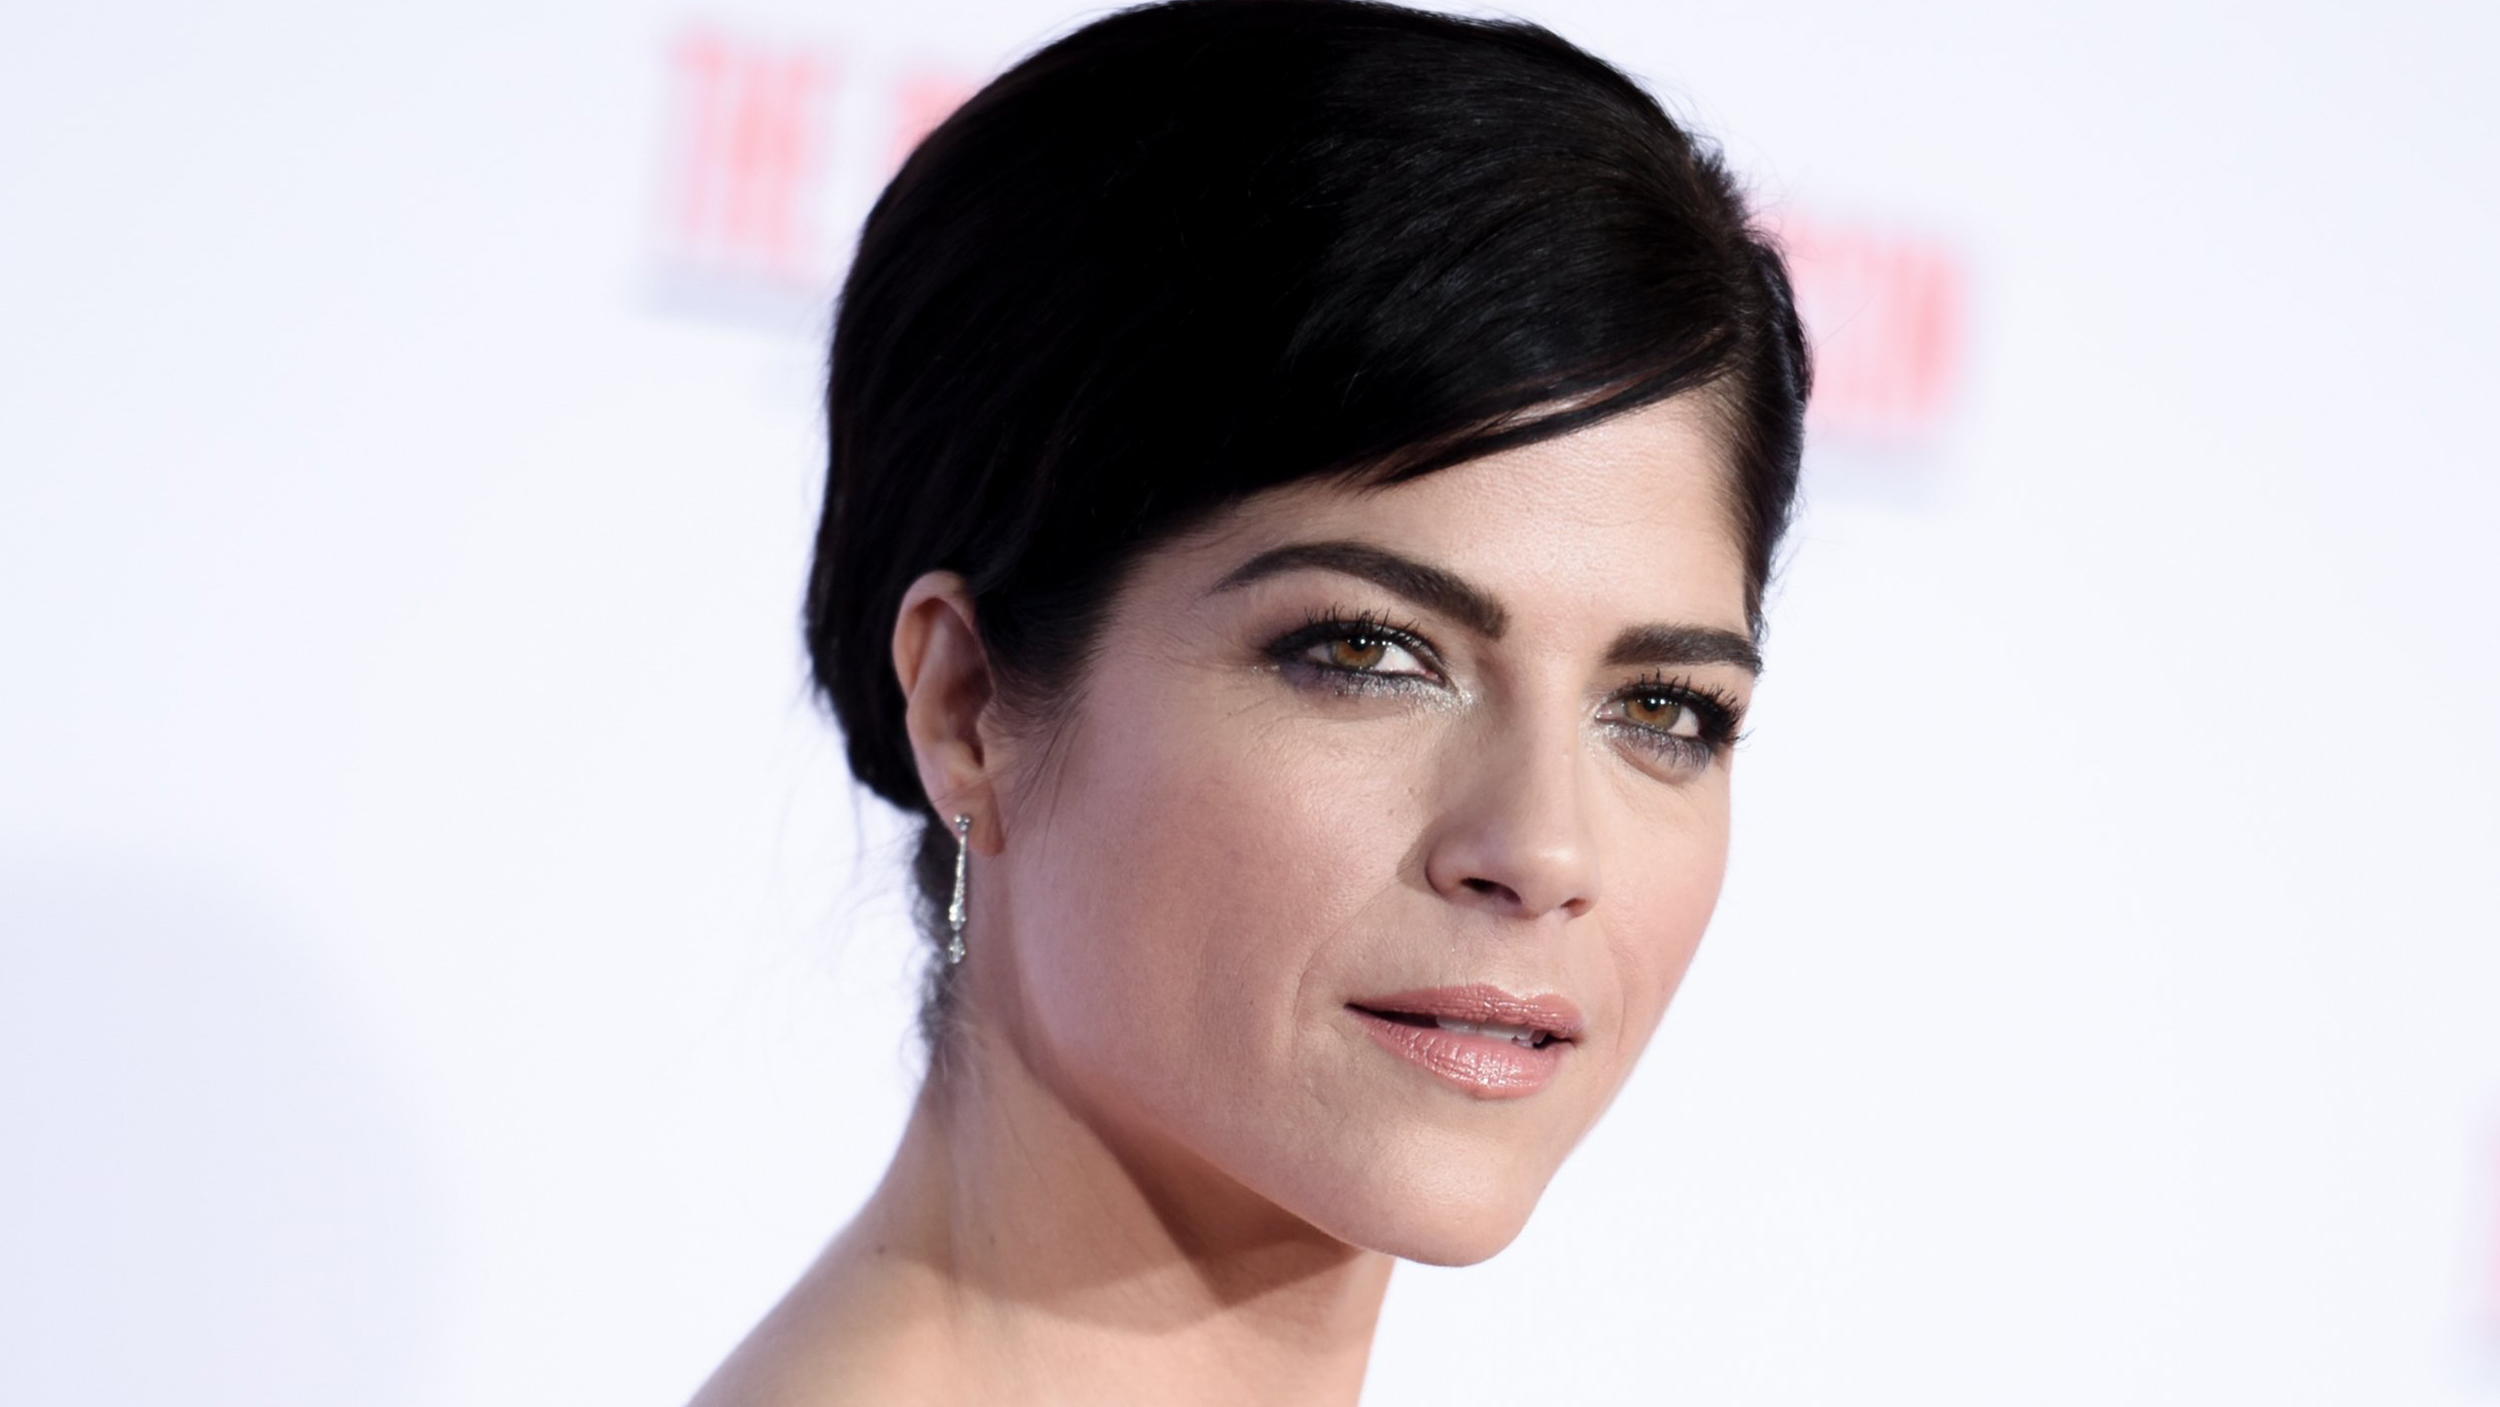 Selma Blair Selma Blair new pics